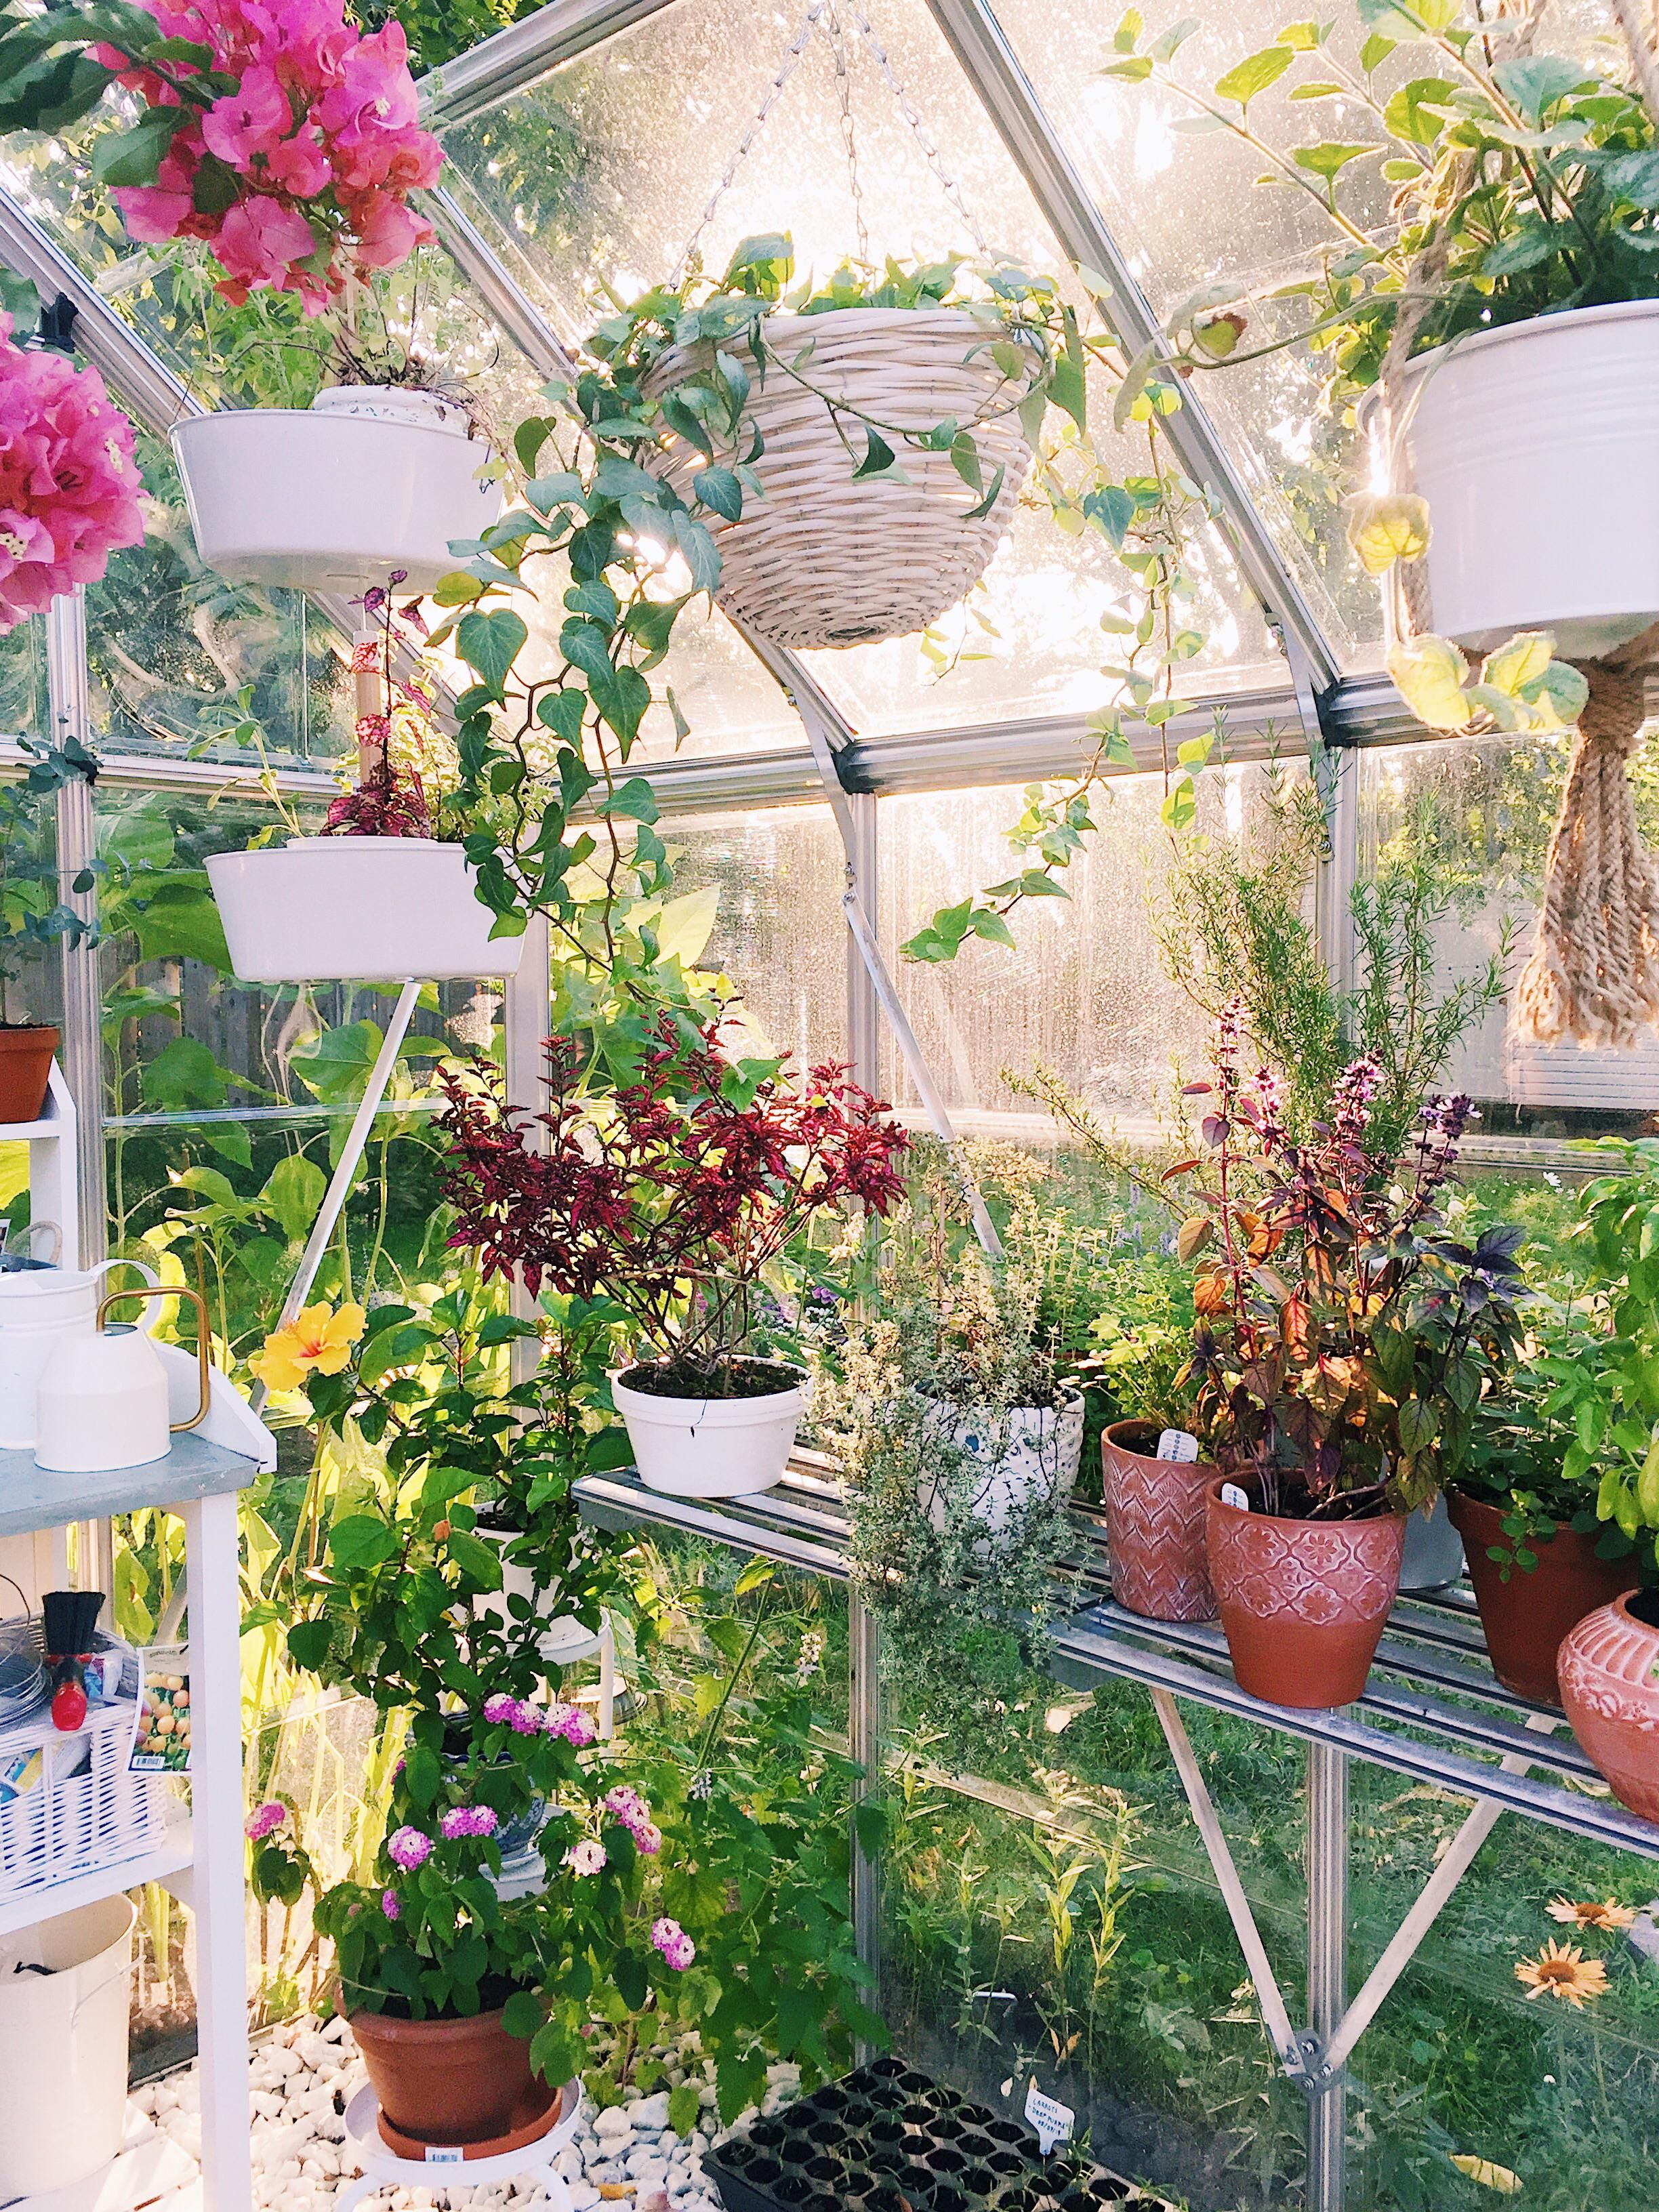 Our Greenhouse Is Looking Cute This Season Gardening Garden Diy Home Flowers Roses Nature Landscaping Horticu Greenhouse Easy Garden Planting Flowers